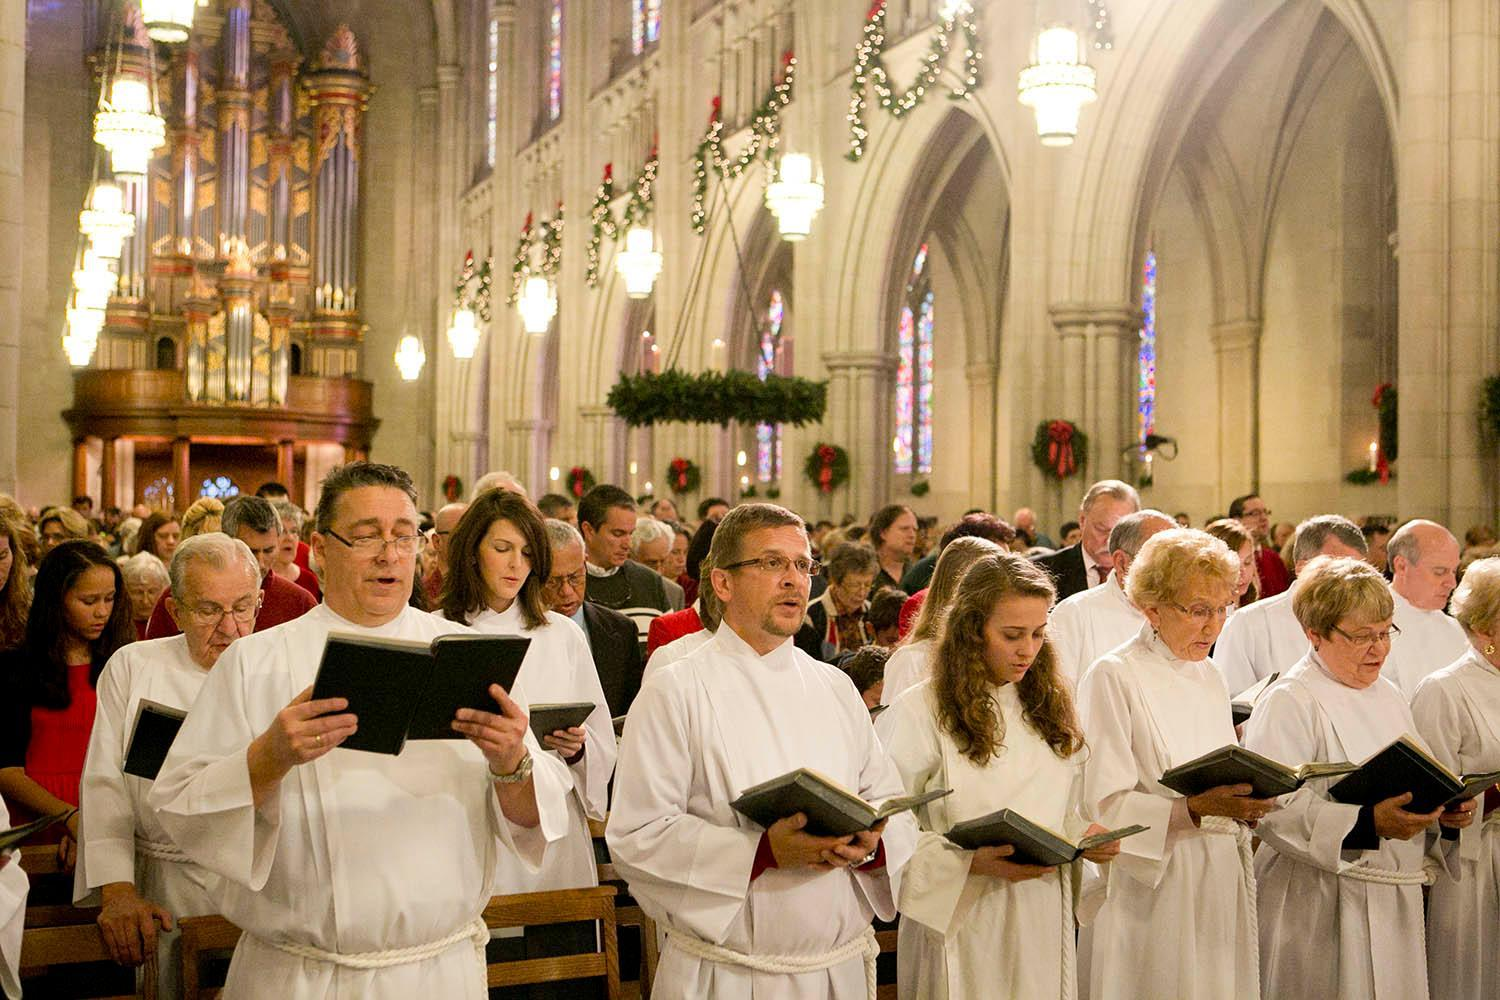 Duke Chapel Christmas Eve 2020 Christmas Eve Worship Service with Holy Communion | Duke